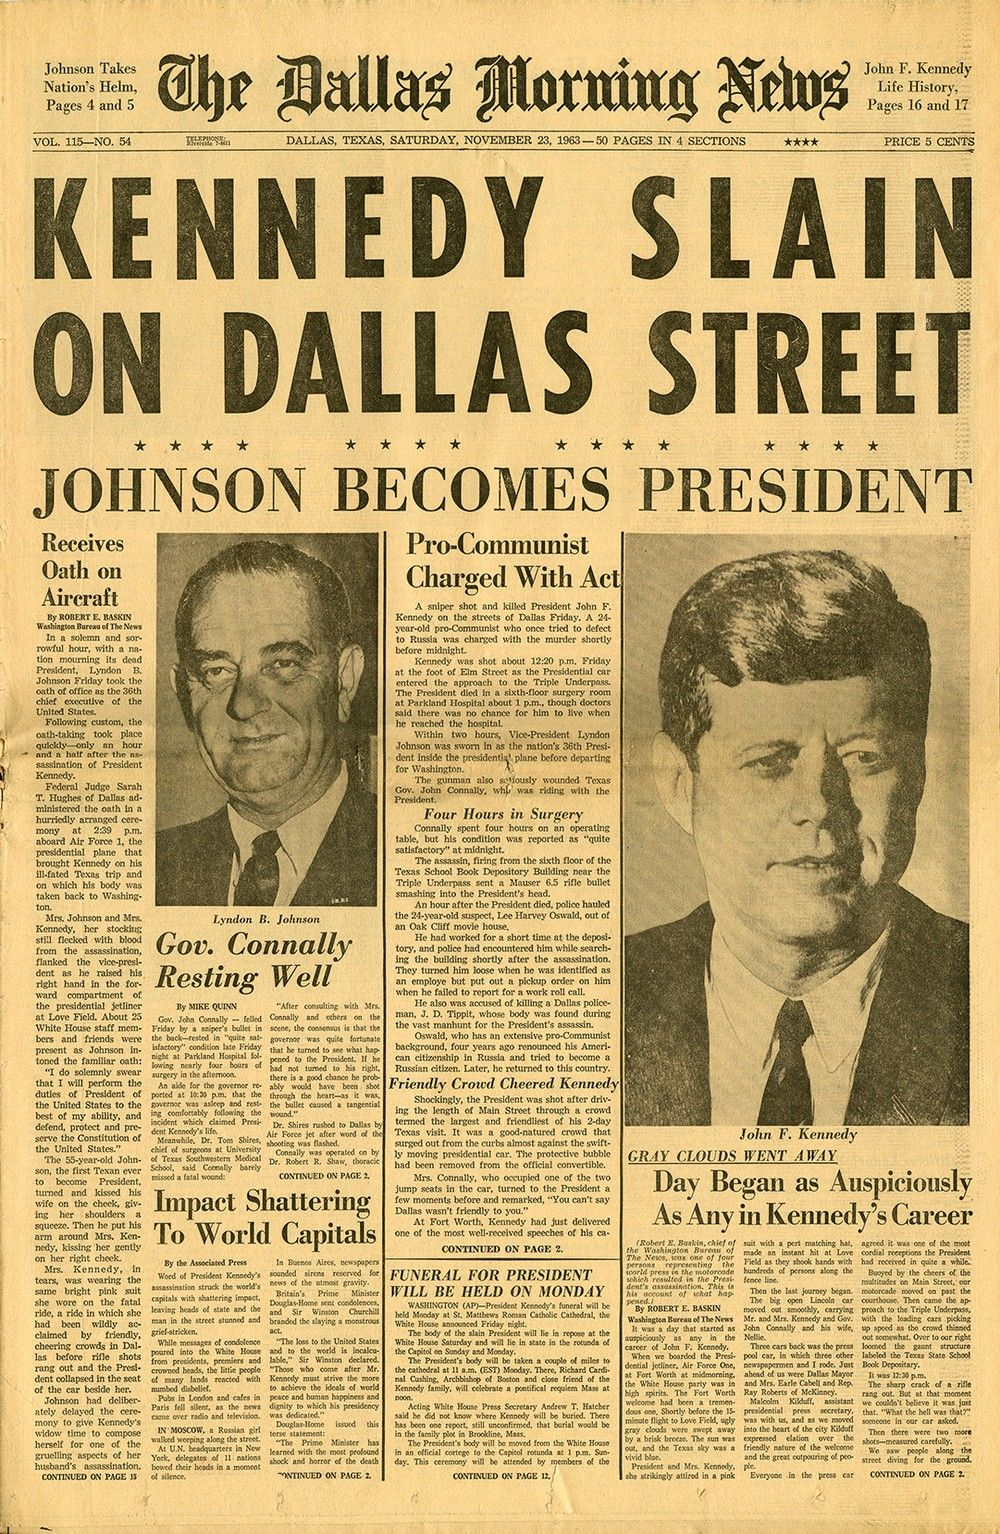 """Kennedy Slain on Dallas Street"" - The Dallas Morning News November 23, 1963 Edition"